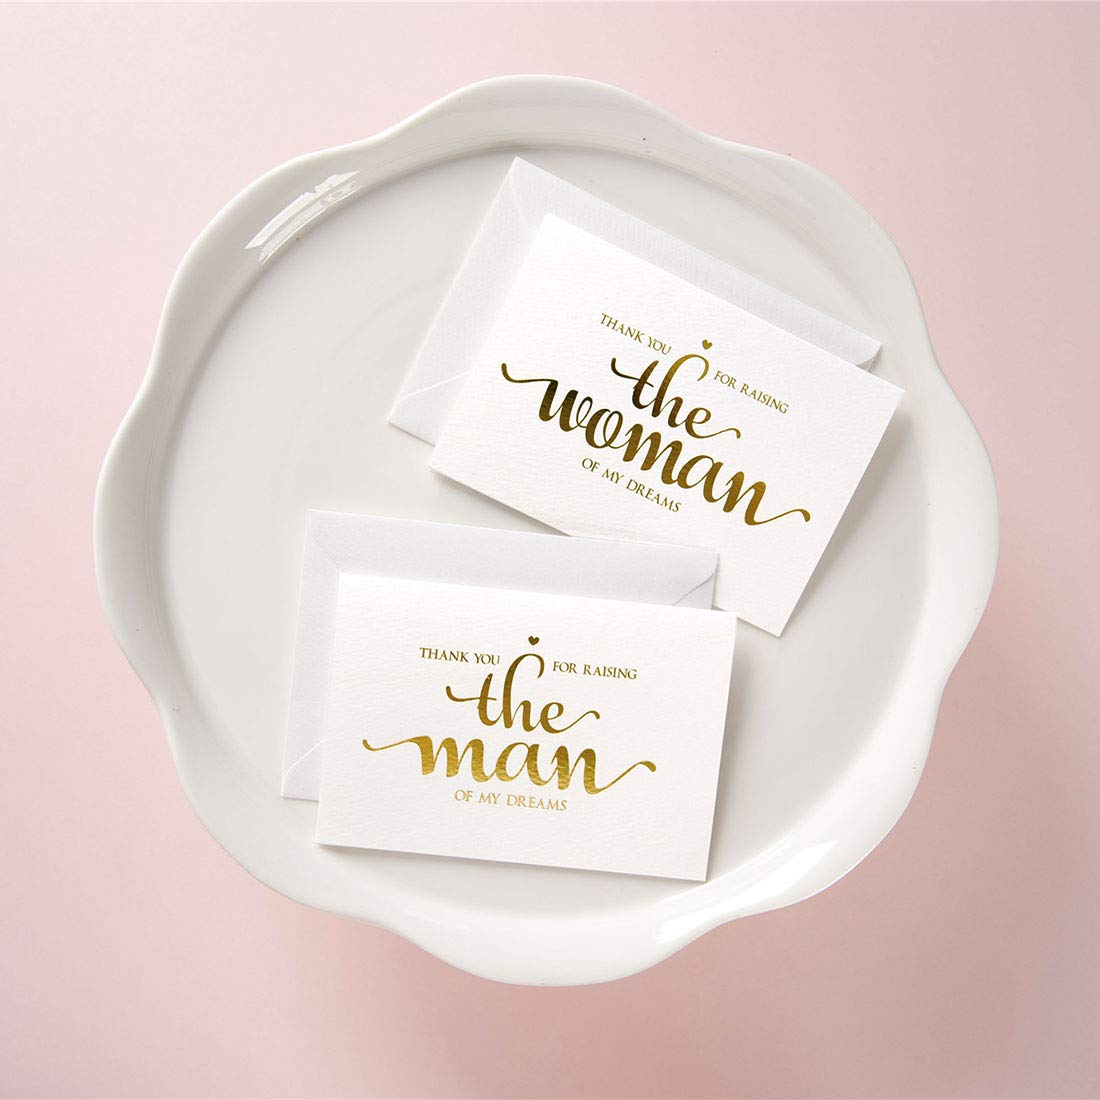 Gold Foil Wedding Day Cards Set to Your in Laws from Bride and Groom MAGJUCHE Thank You for Raising The Man The Women of My Dreams